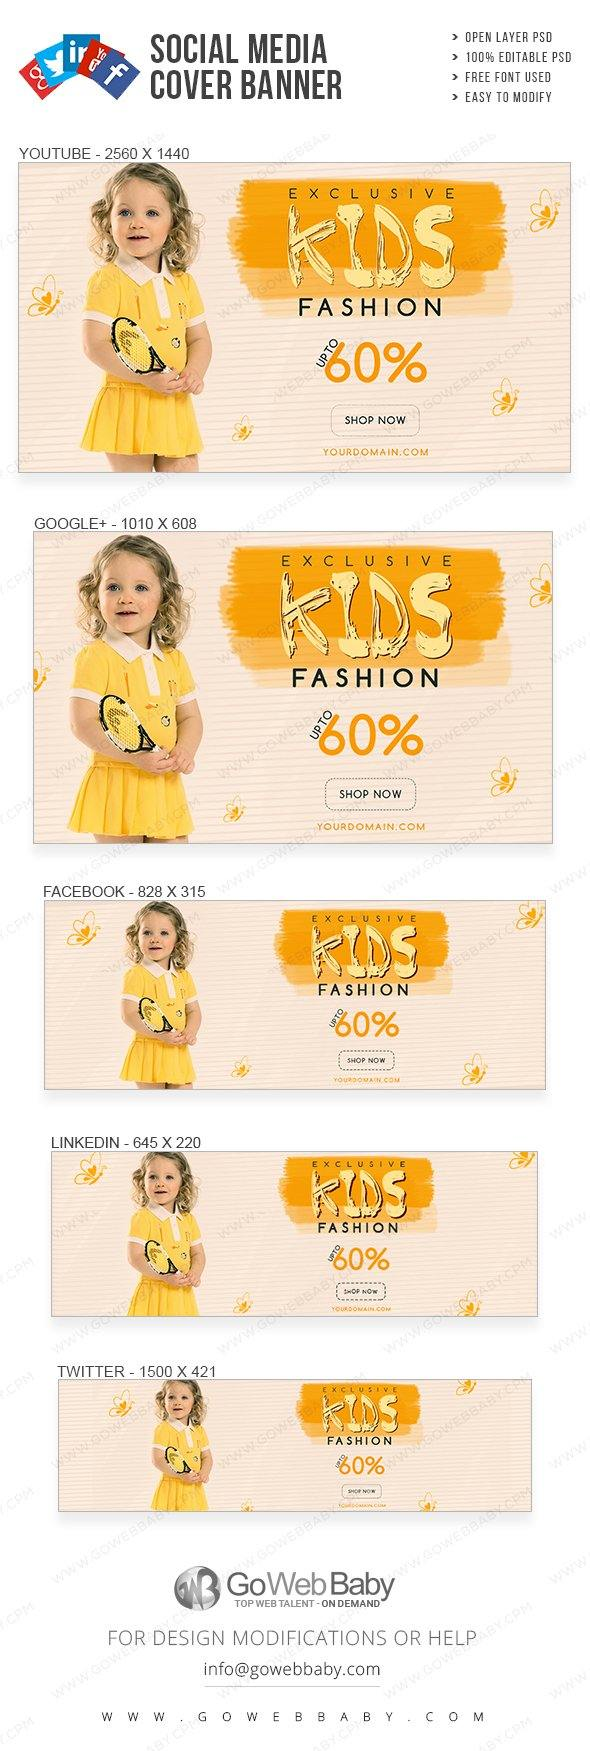 Social Media Cover Banner - Exclusive Kids Fashion For Website Marketing - GoWebBaby.Com